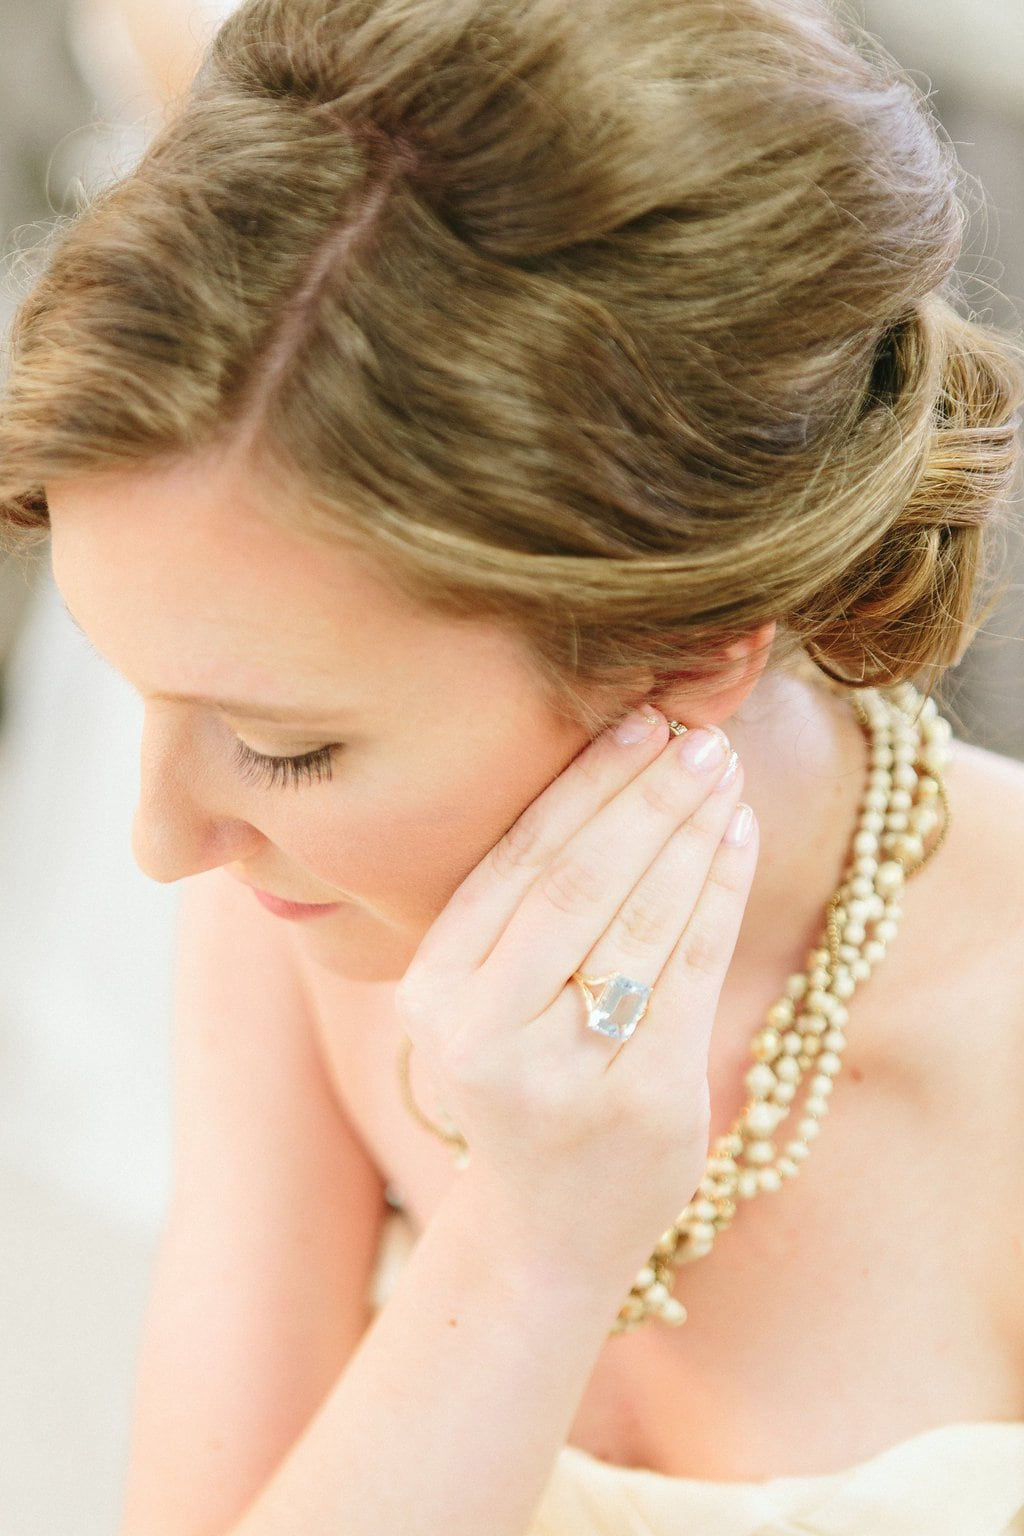 bride putting on earrings and jewelry